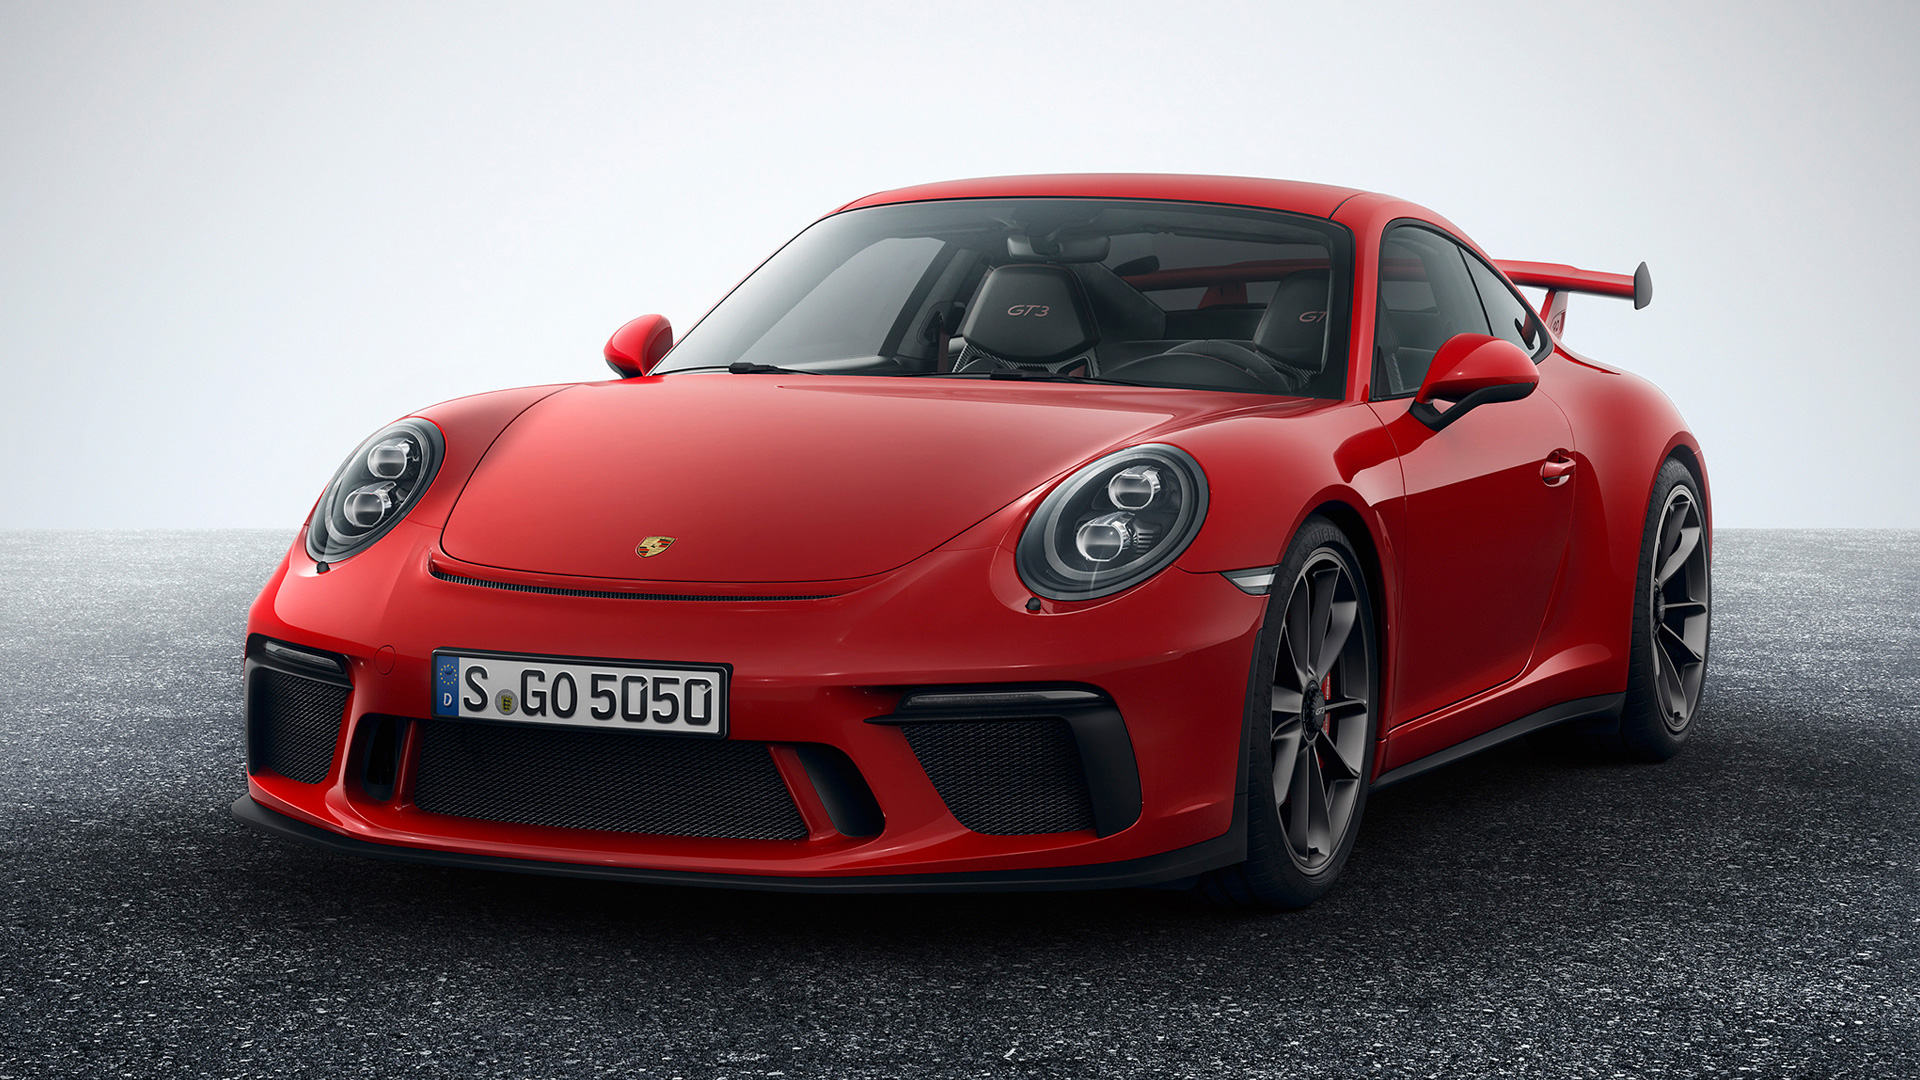 Porsche 911 2019 Price Mileage Reviews Specification Gallery Overdrive